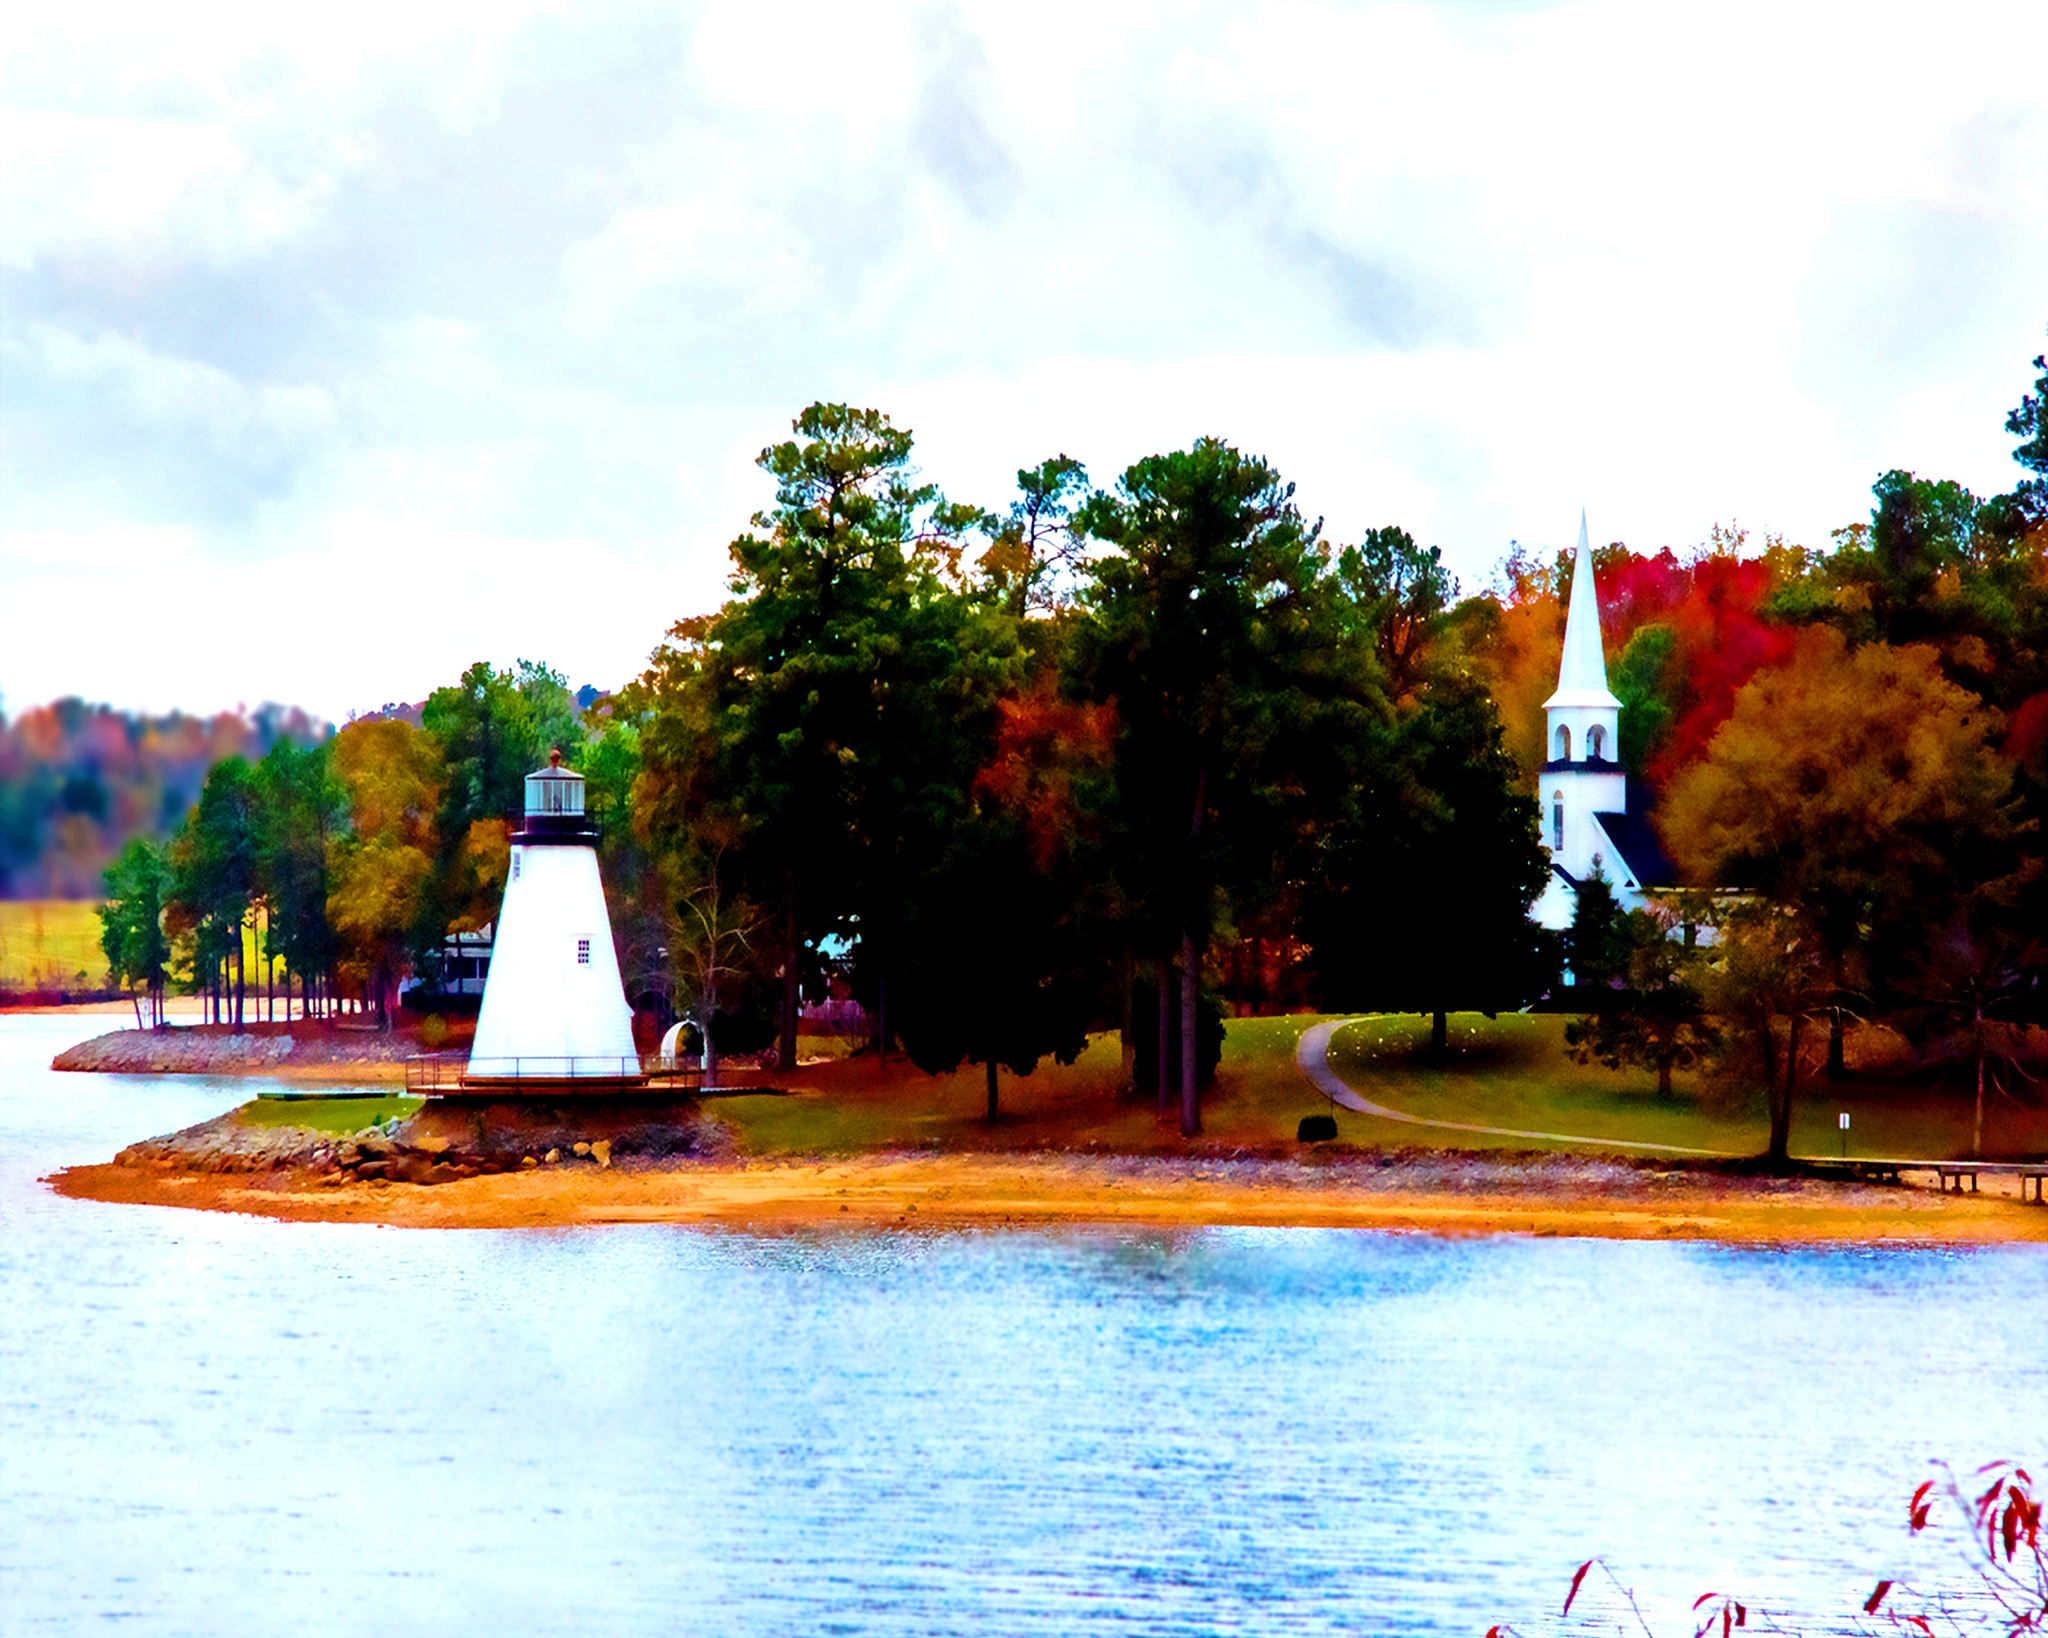 Fall at Children's Harbor by mfontaine